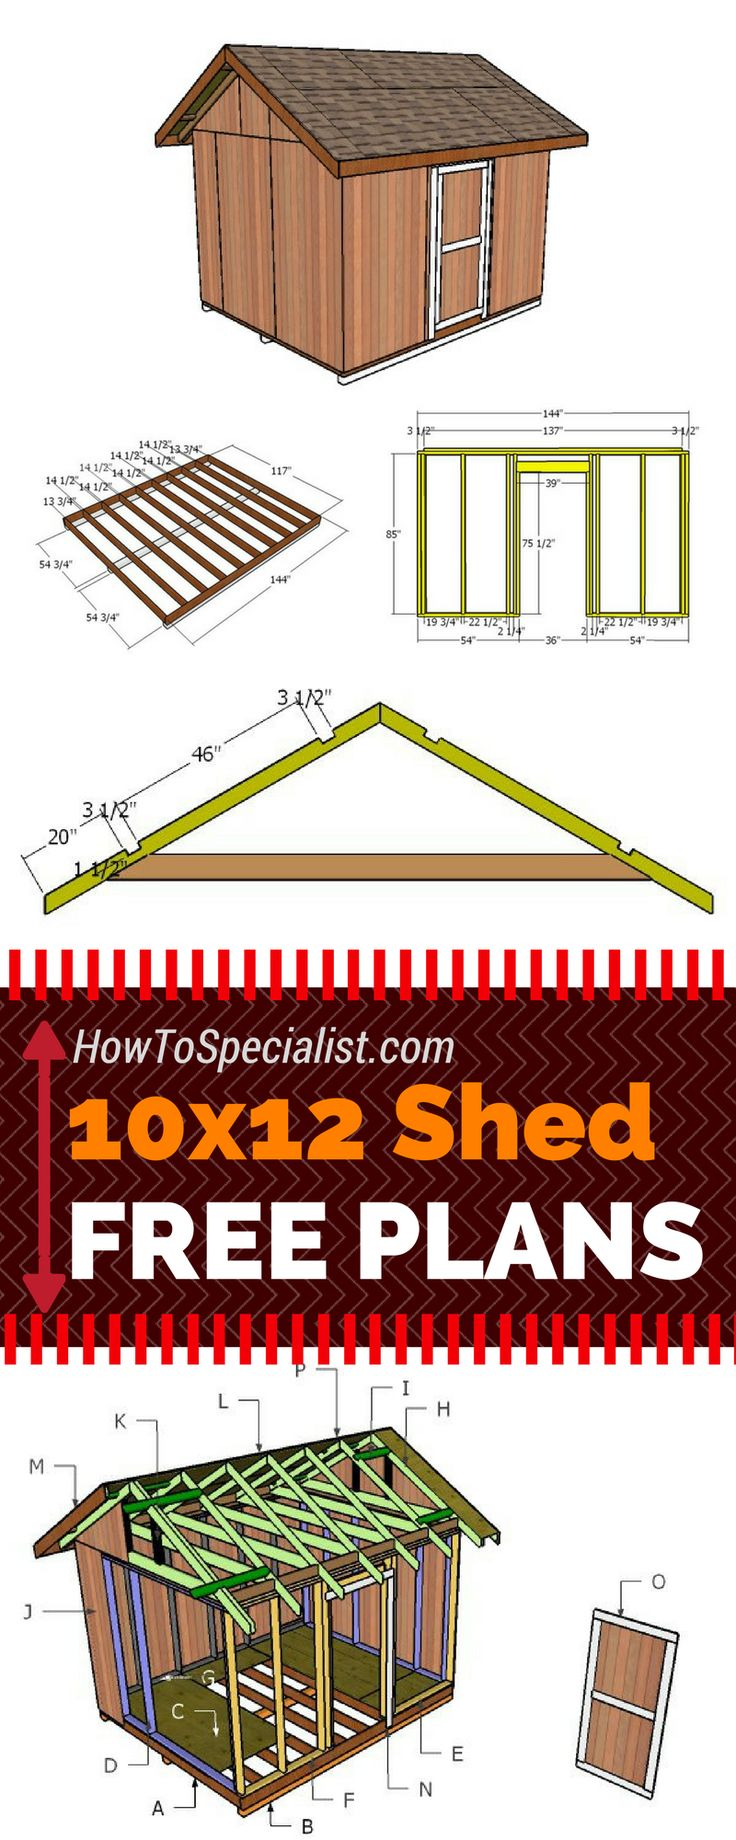 ^ 1000+ ideas about 10x12 Shed on Pinterest 10x12 shed plans, Shed ...